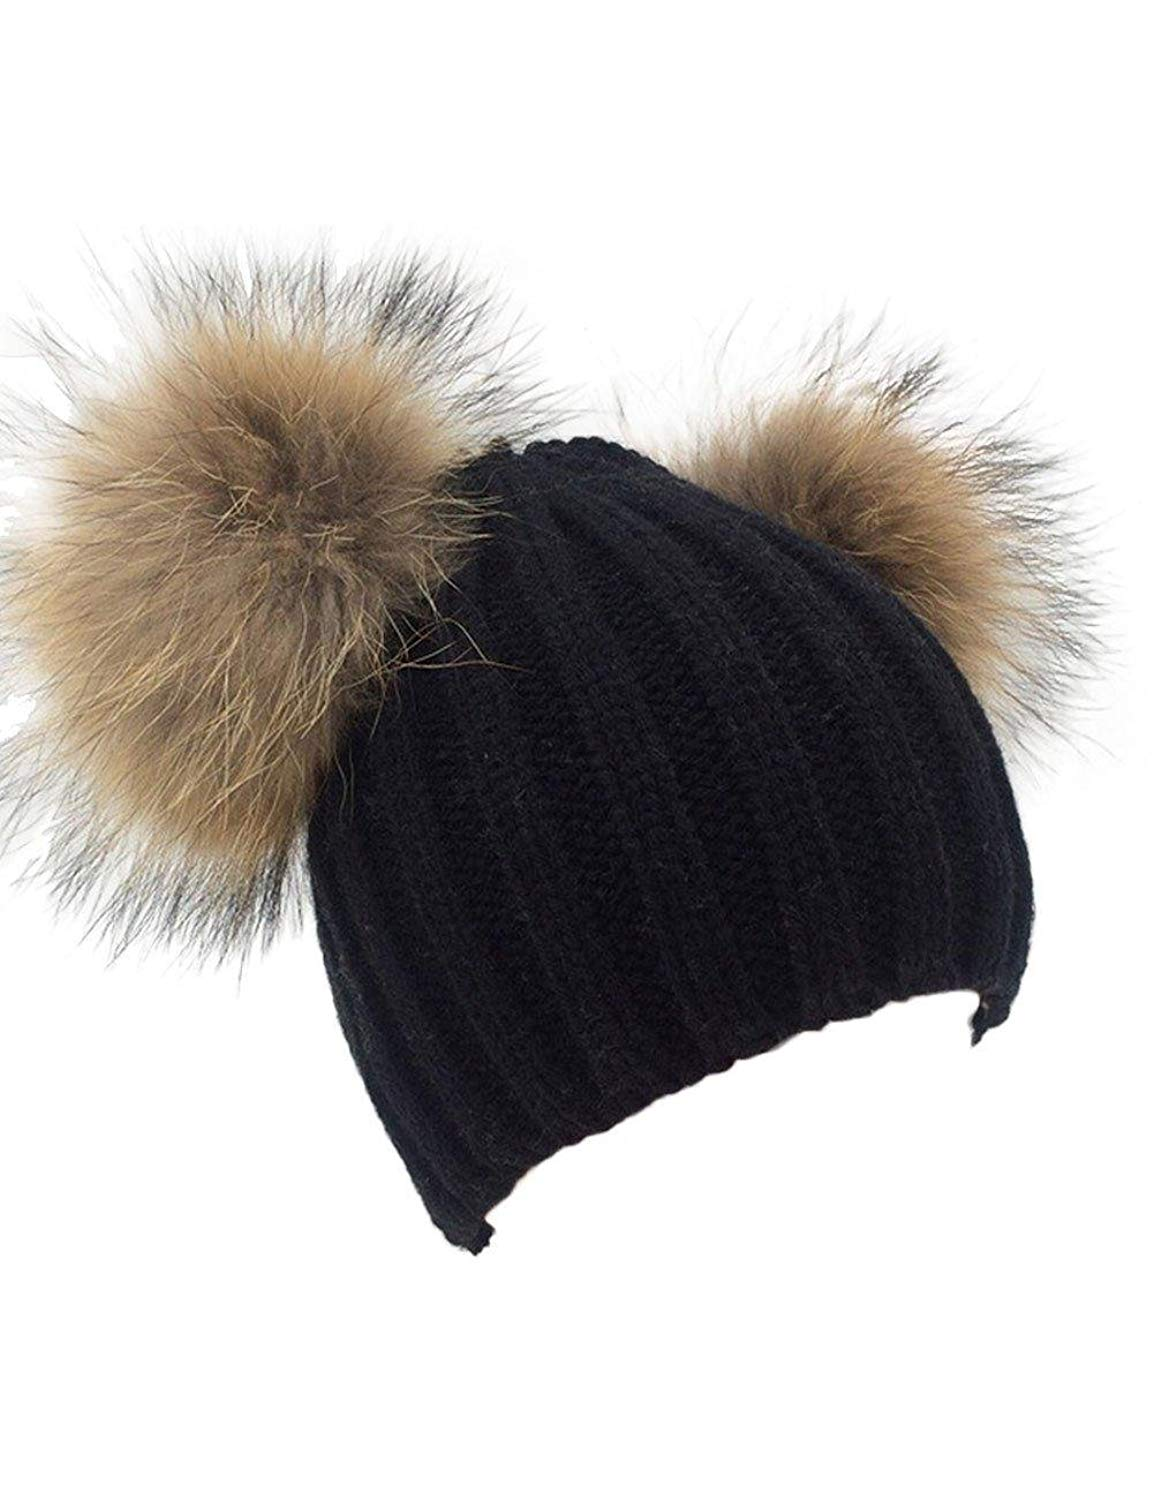 96d25fab9b7 Knitted Hat With Double Pom Pom